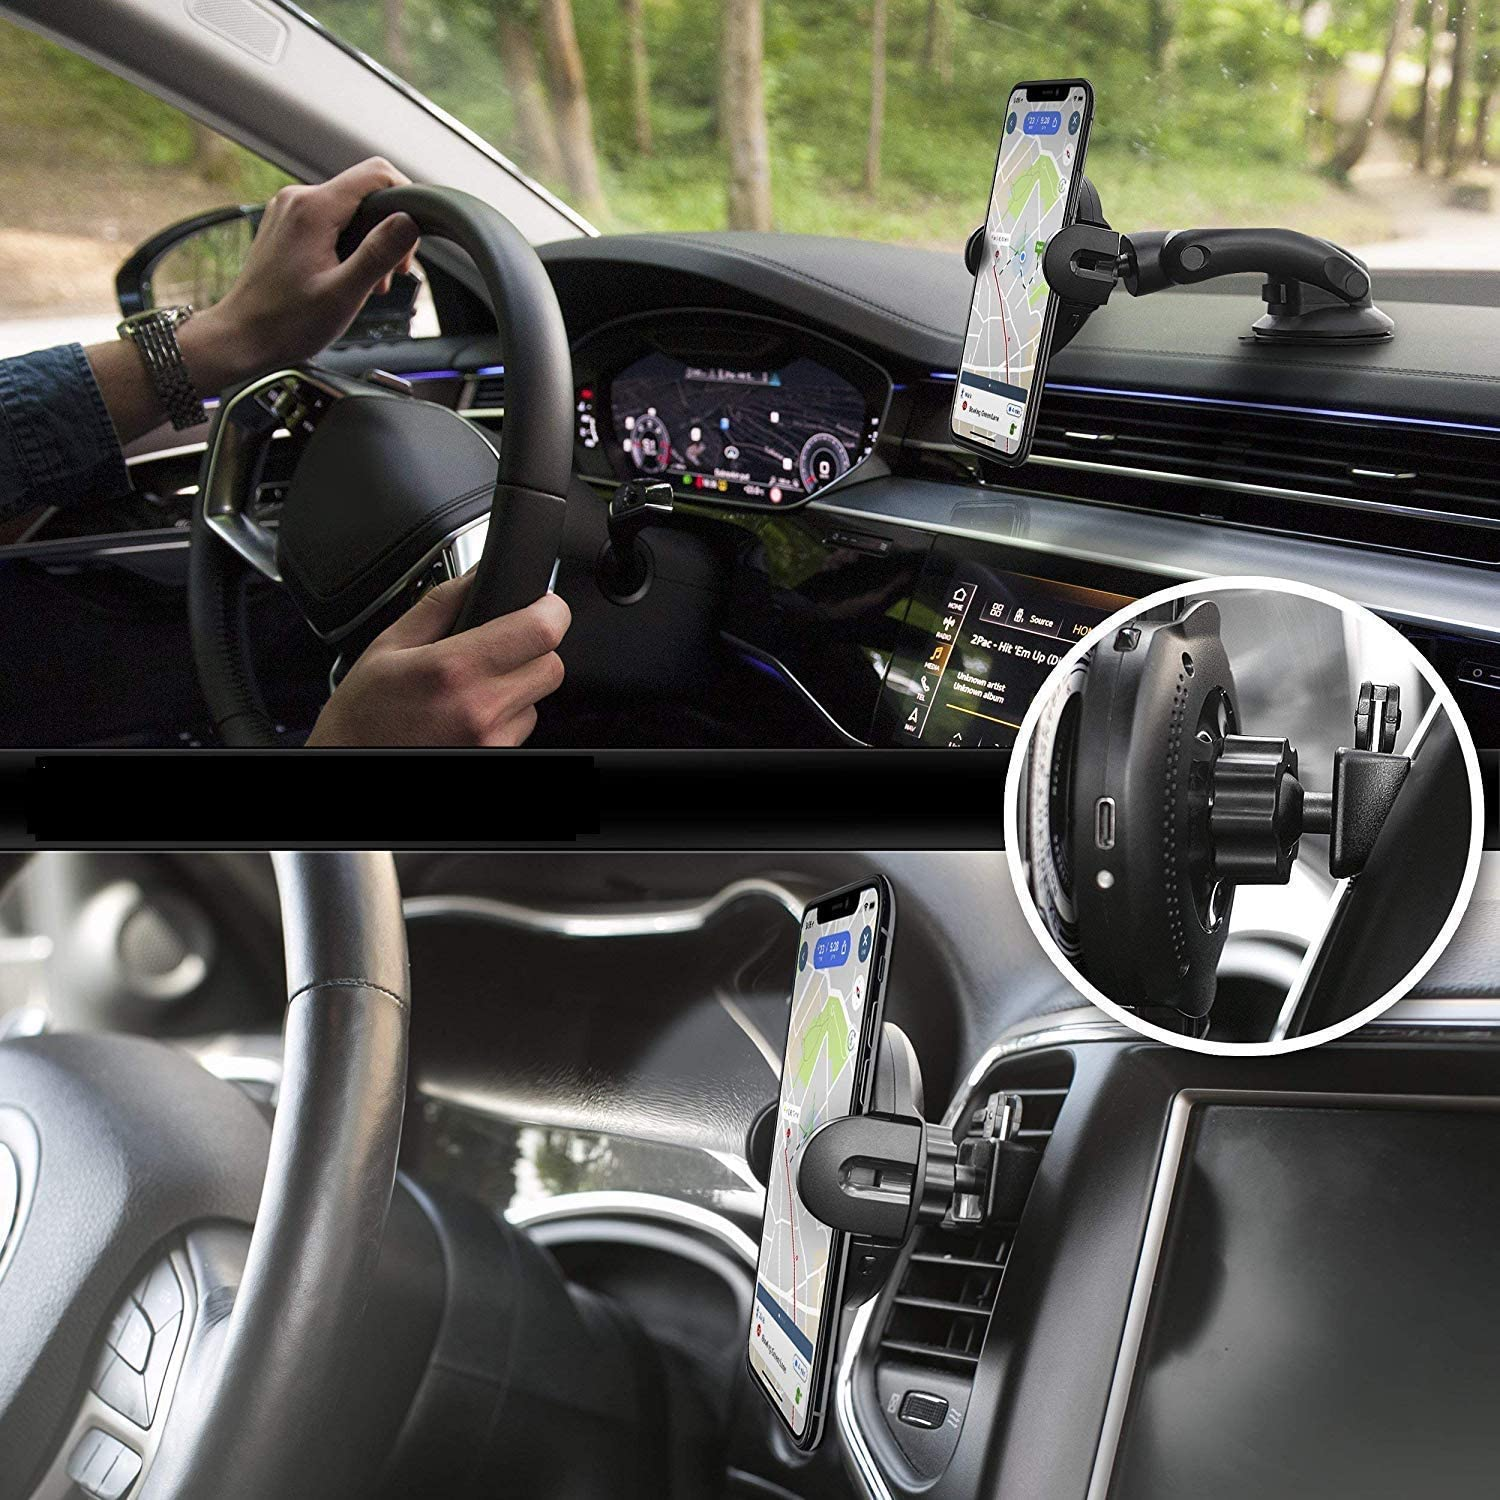 Samsung Galaxy Note 9//S9//S9+//S8//S8+ Wireless Car Charger DoSHIn Automatic Qi Car Mount 15W//10W//7.5W Fast Charging Car Phone Holder Air Vent /& Dashboard Compatible with iPhone Xs//Xs Max//XR//X//8//8 Plus